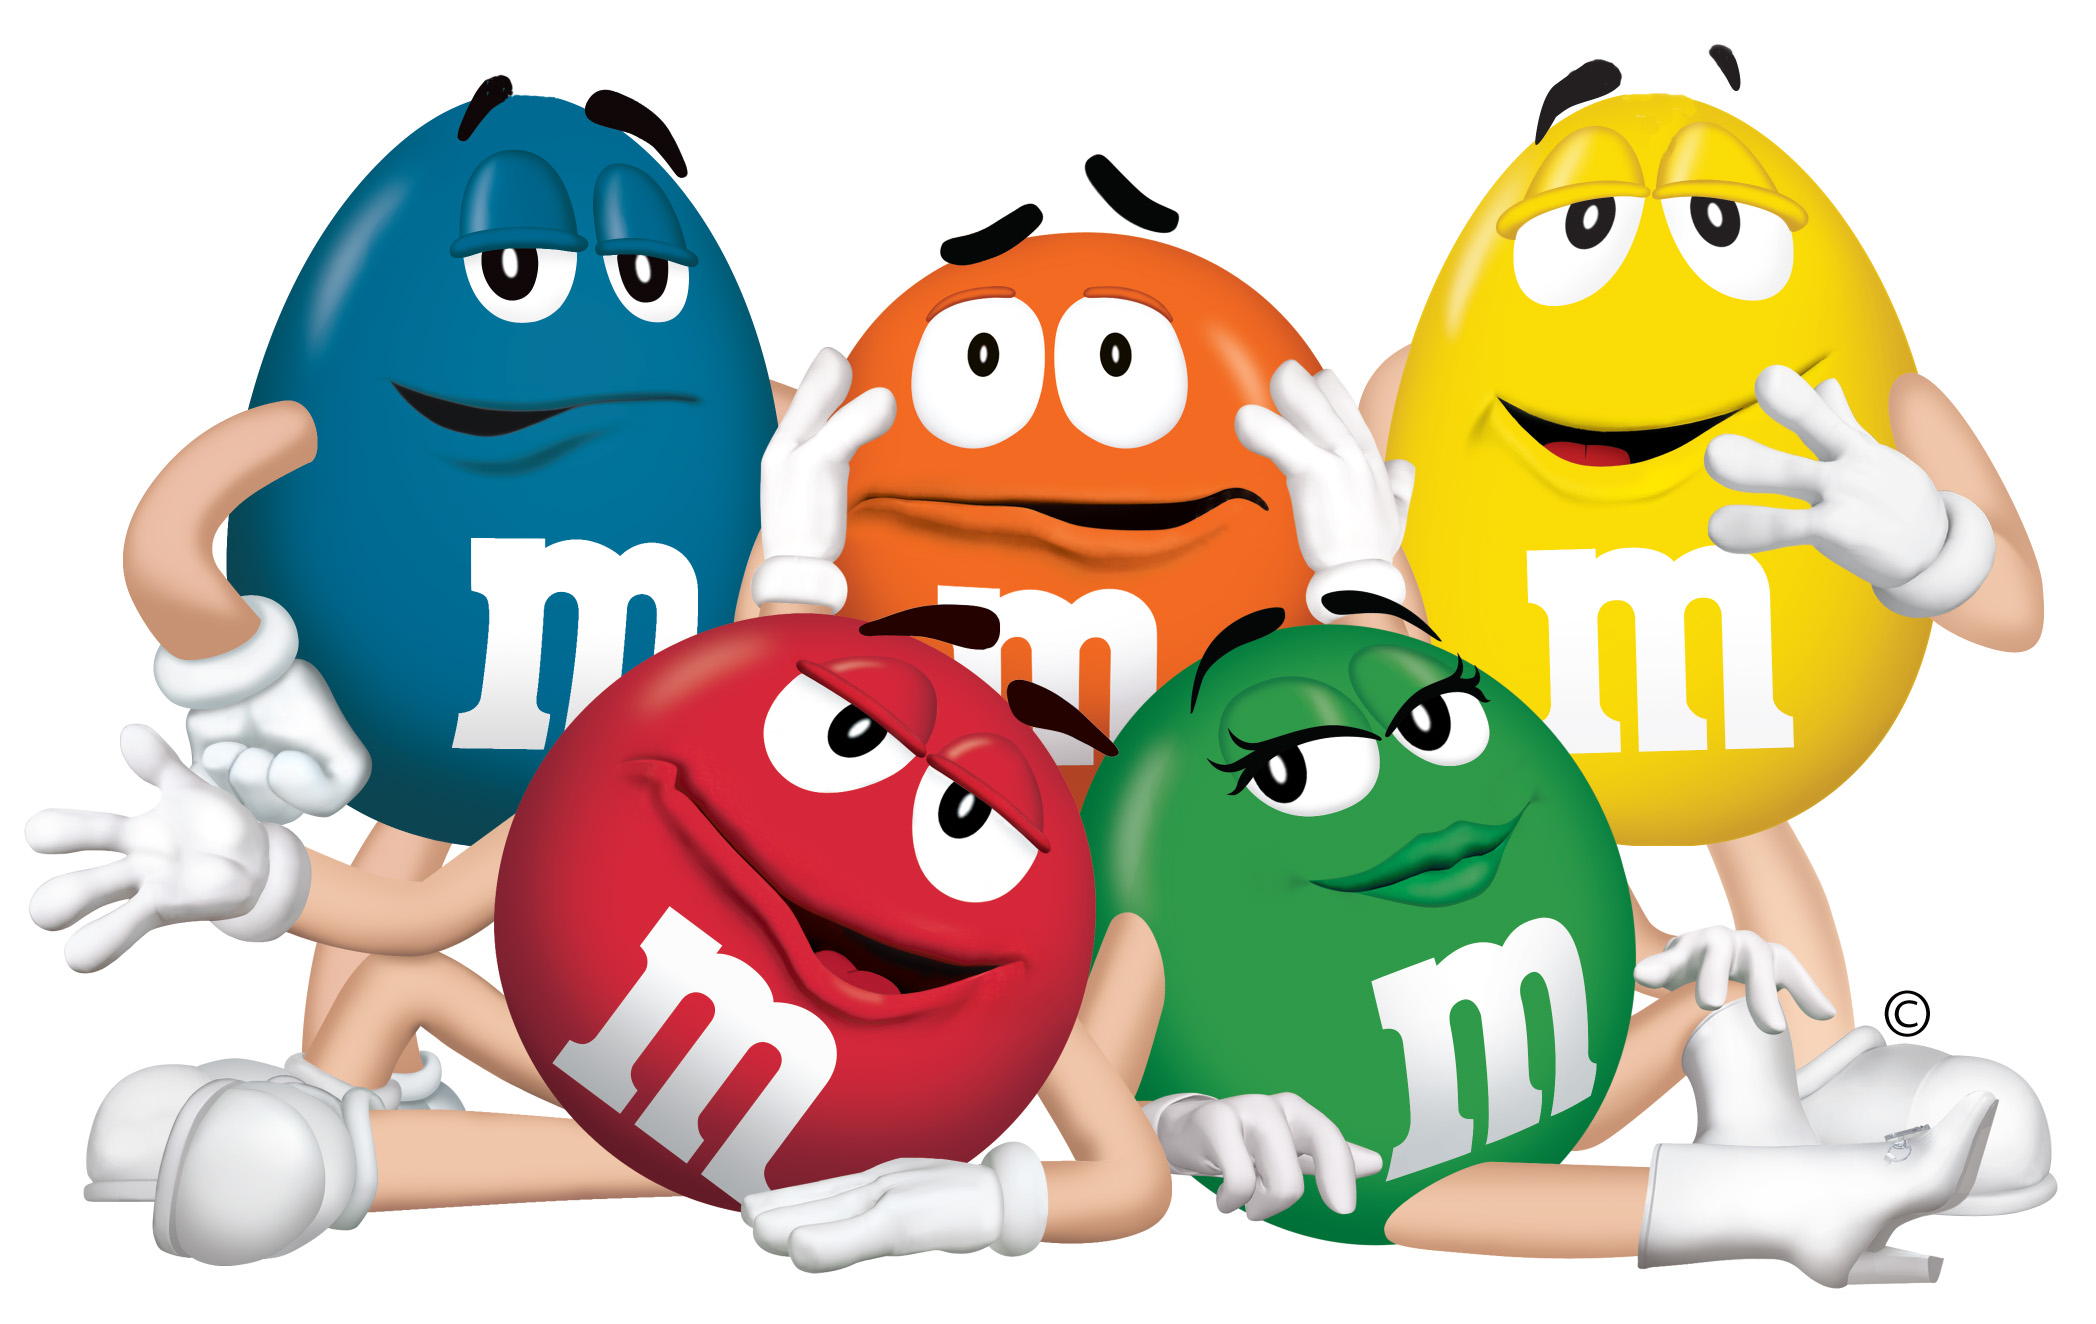 Free m&m clipart black and white. Wich m s chocolate